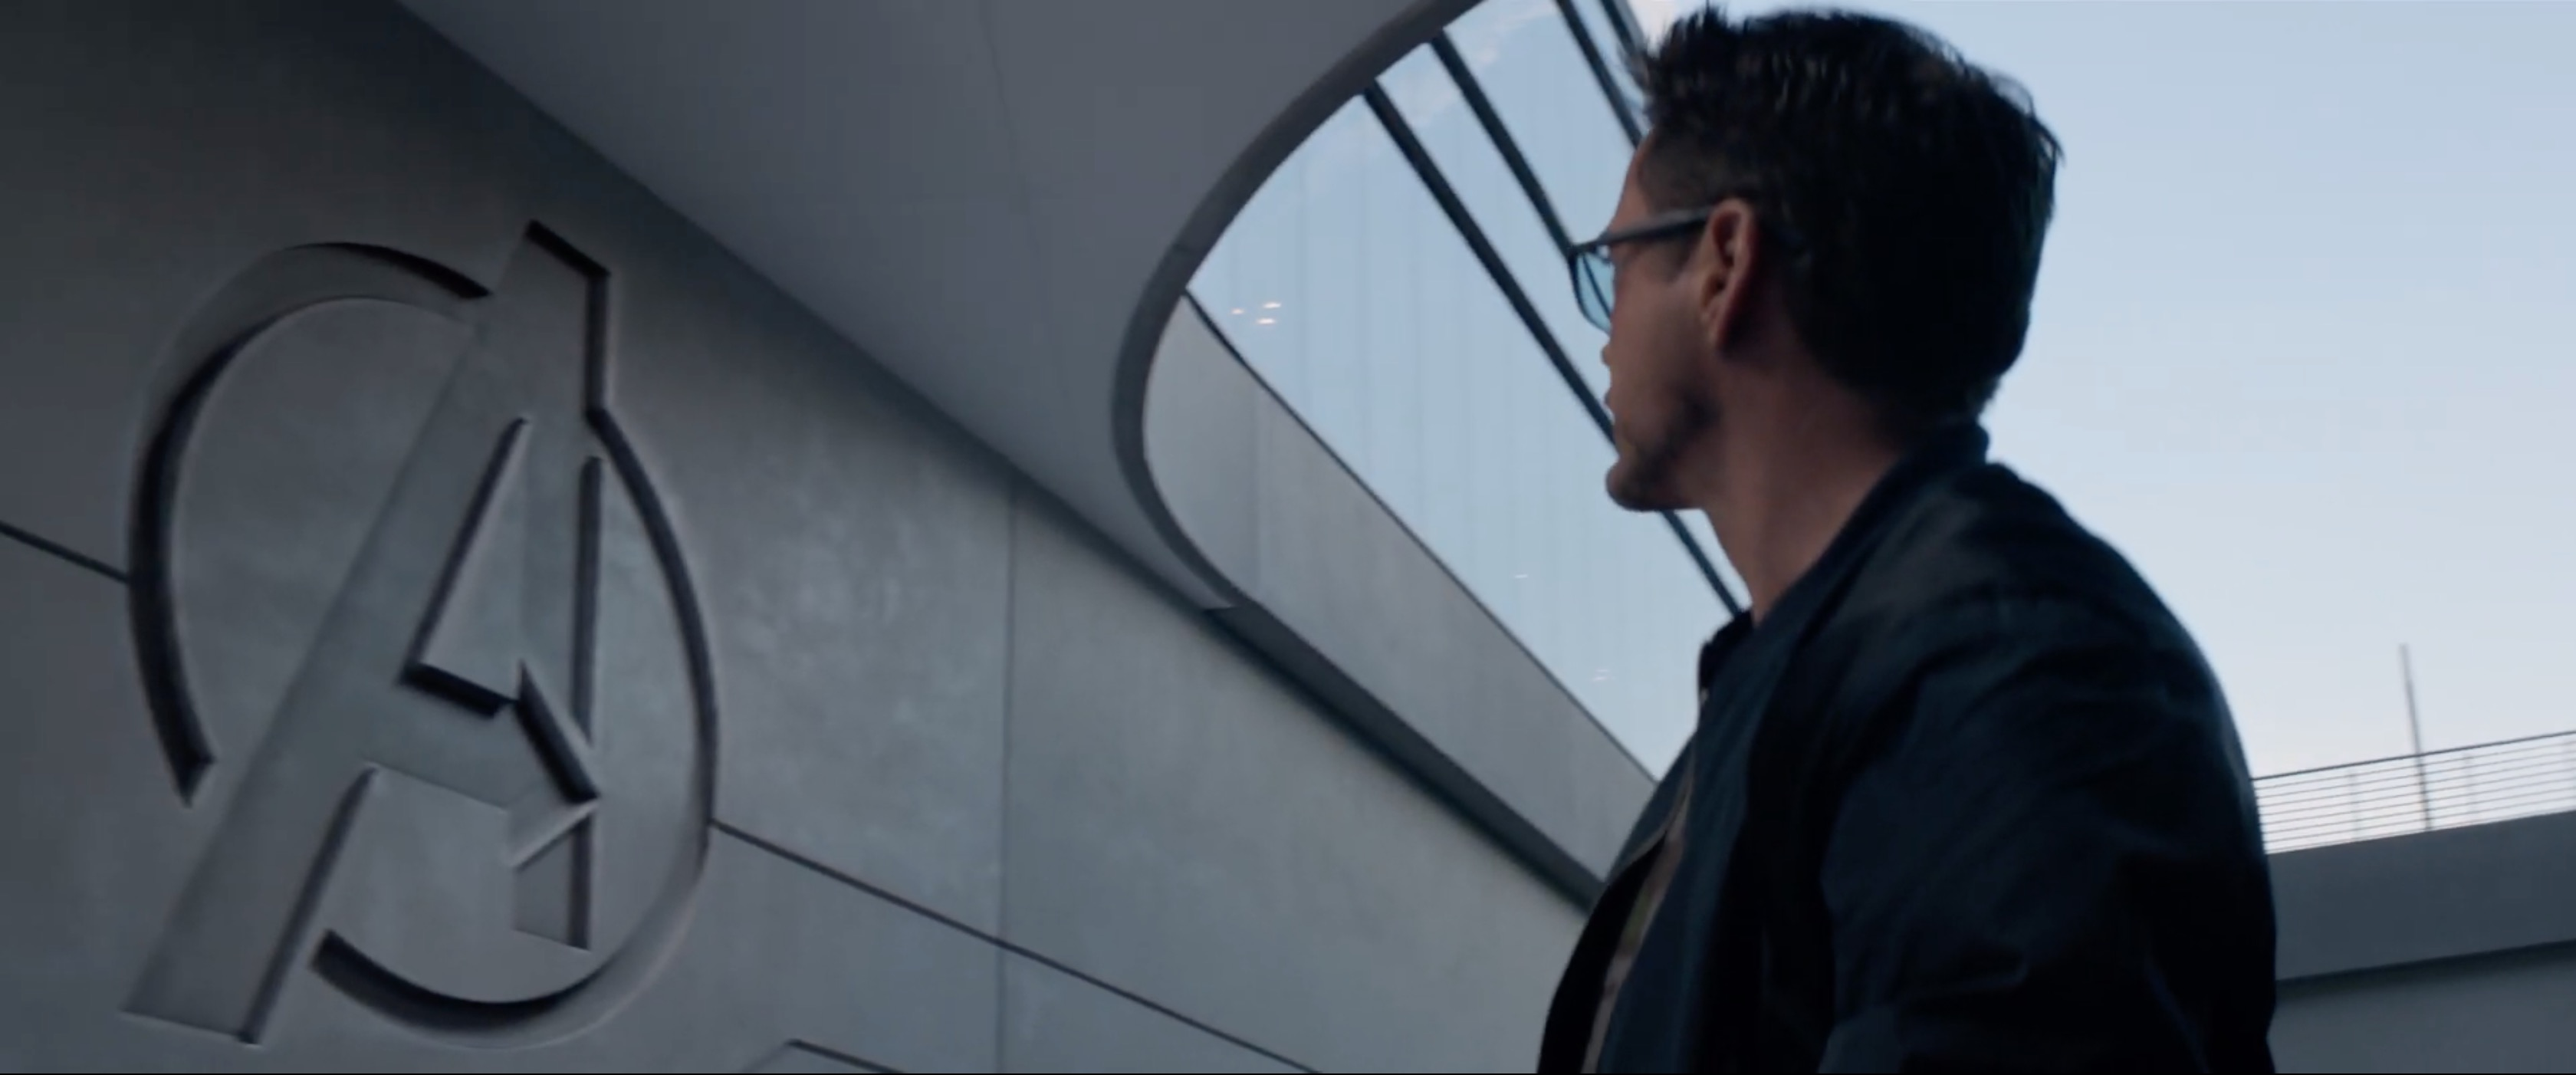 Avengers Endgame Trailer: To the End